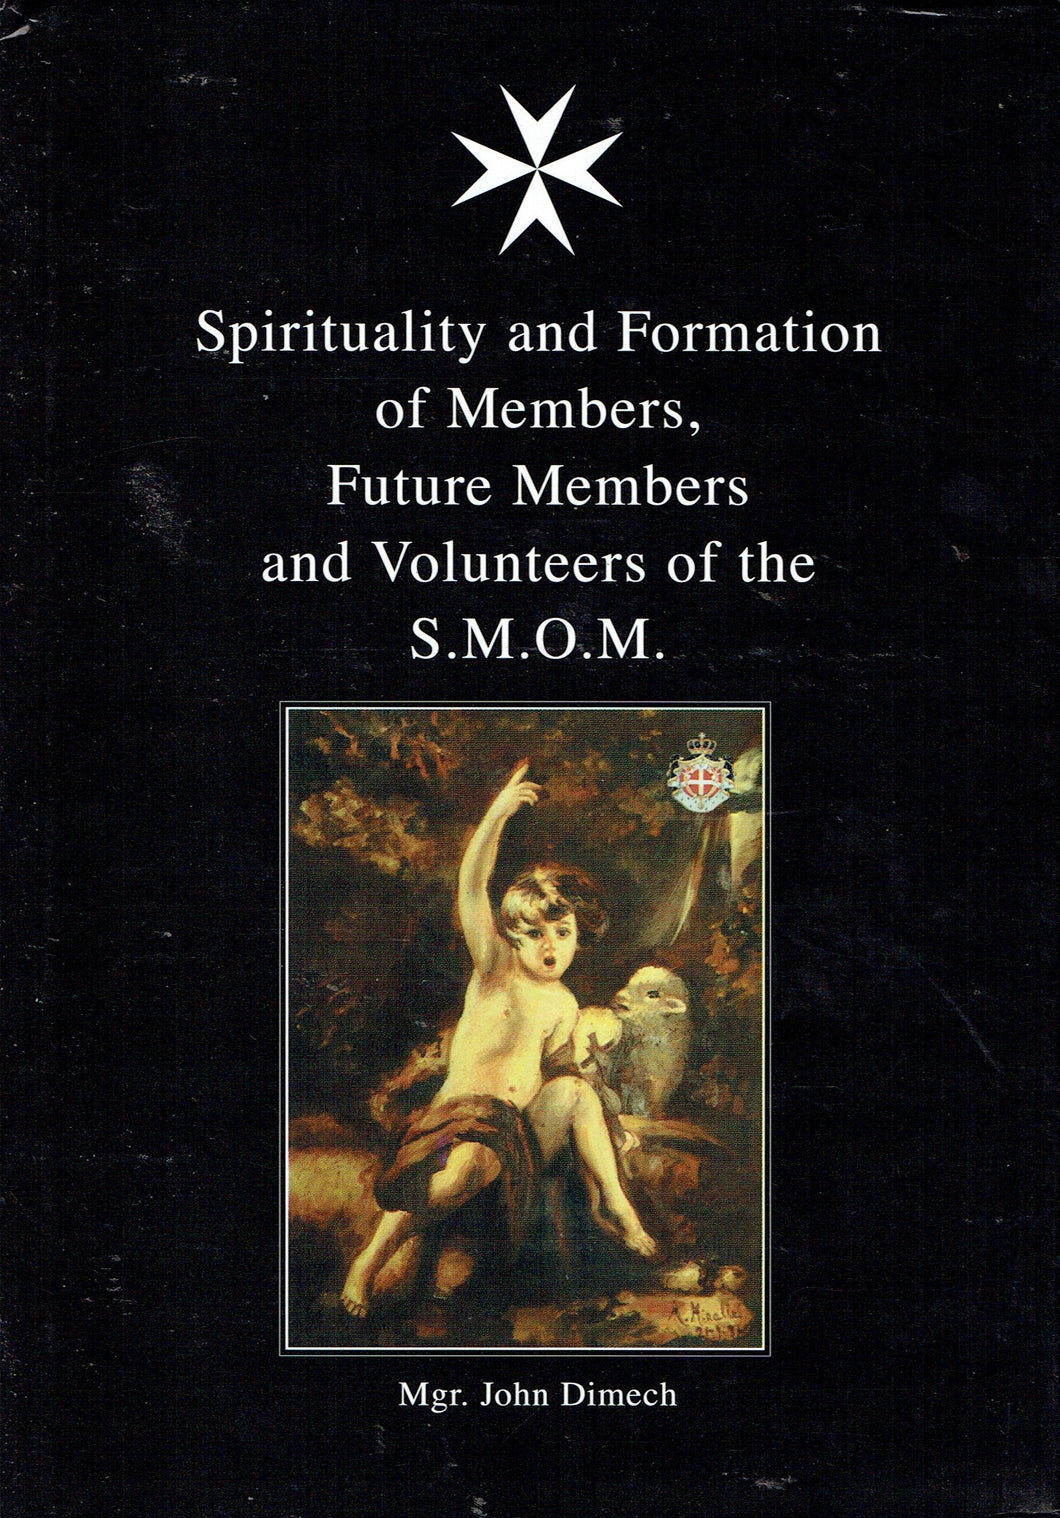 Spirituality and Formation of Members, Future Members and Volunteers of the S.M.O.M.